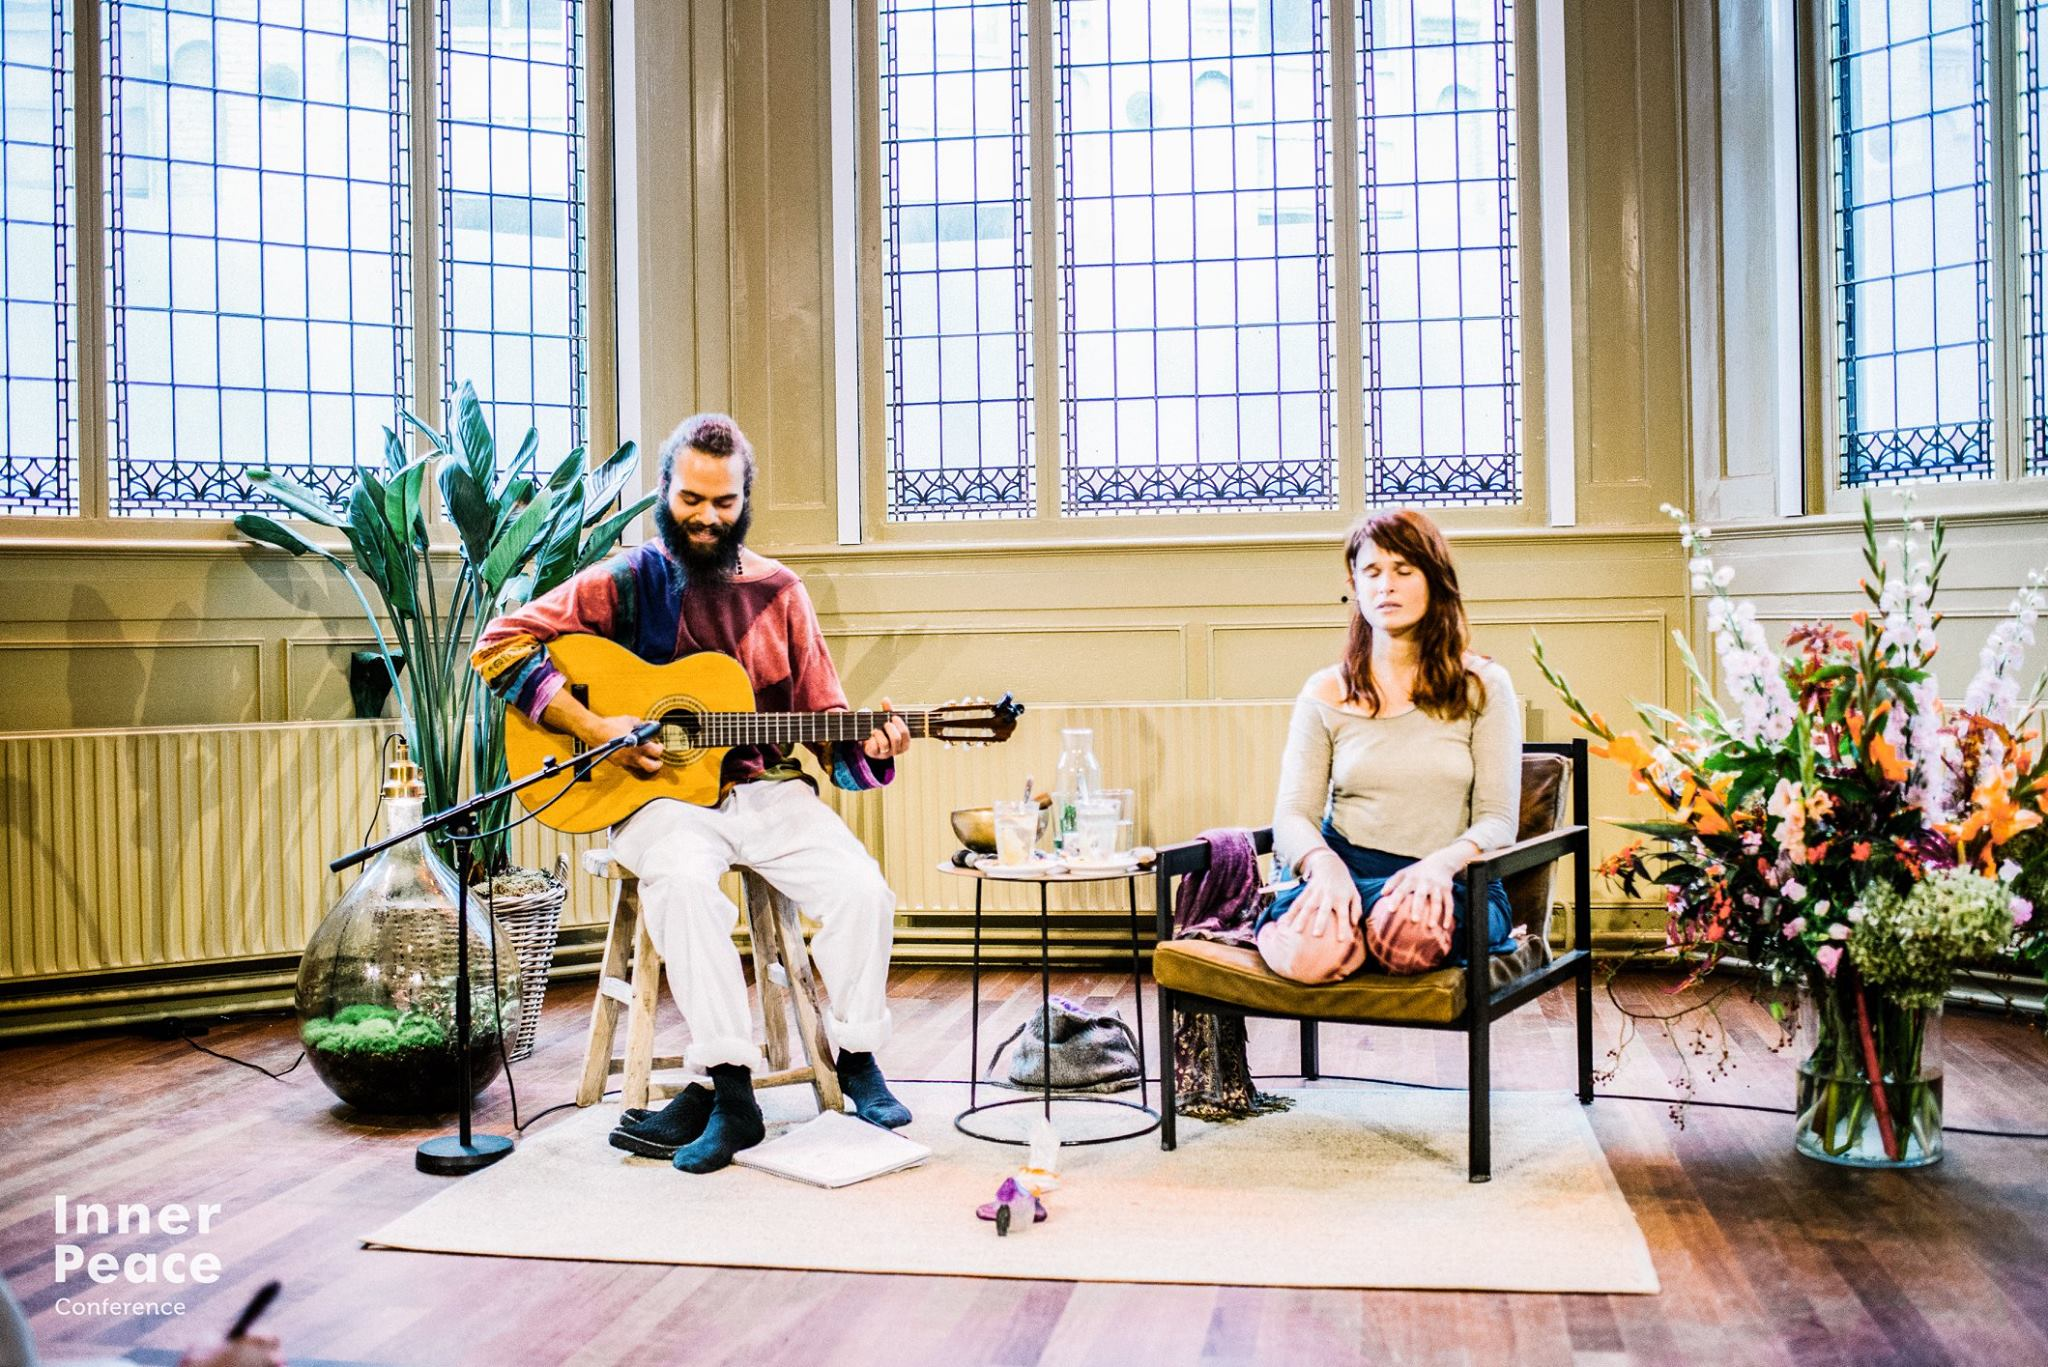 Inner Peace Conference Performance by Eli Kaiser and Molly Warner - Amsterdam, Netherlands, October 2017